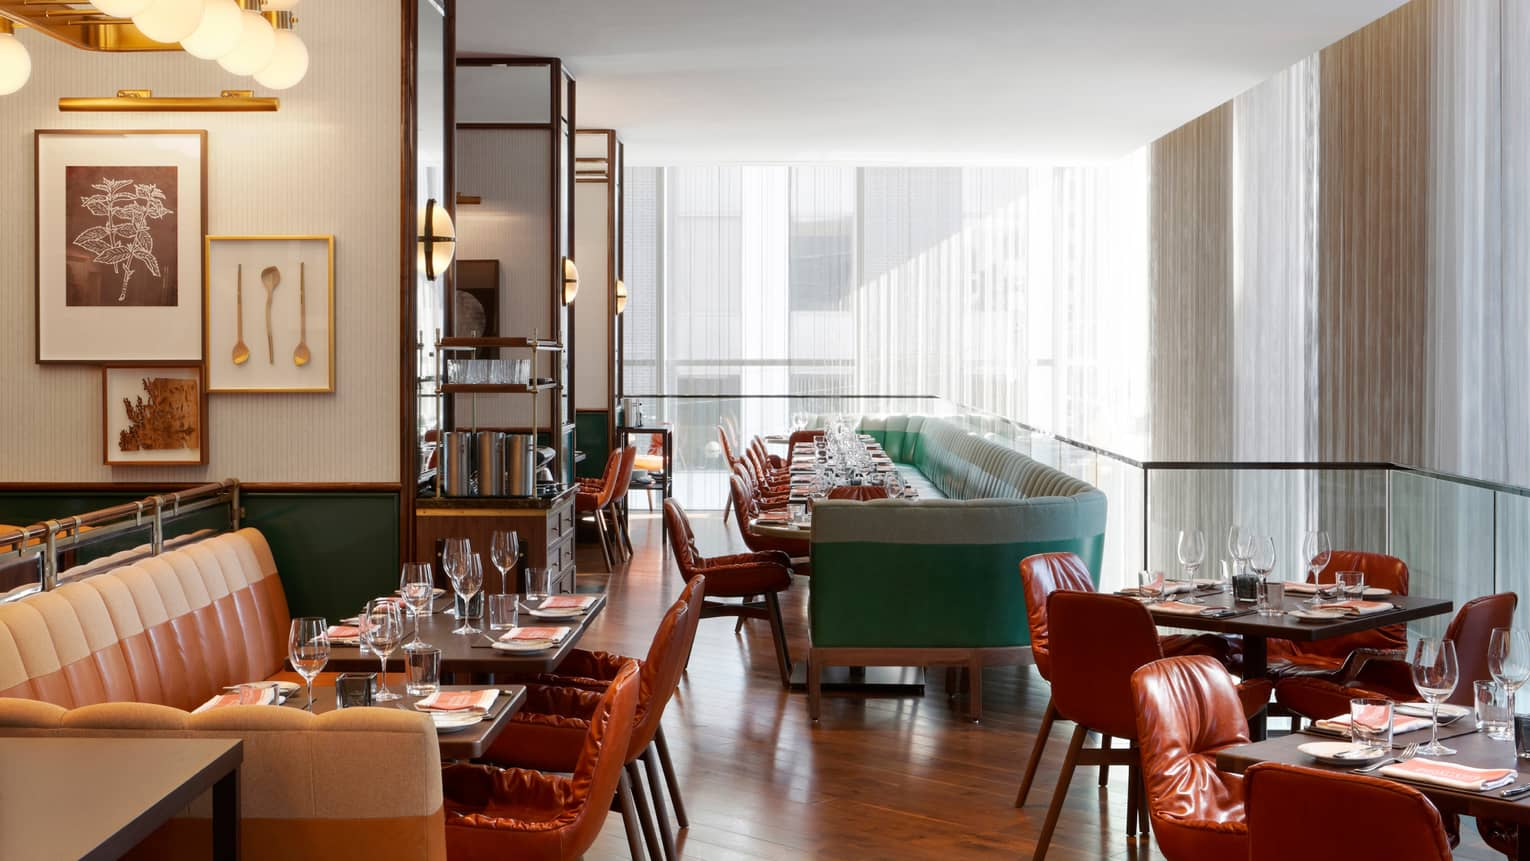 Café Boulud sunny dining room with leather seats and banquettes. tables, white curtains